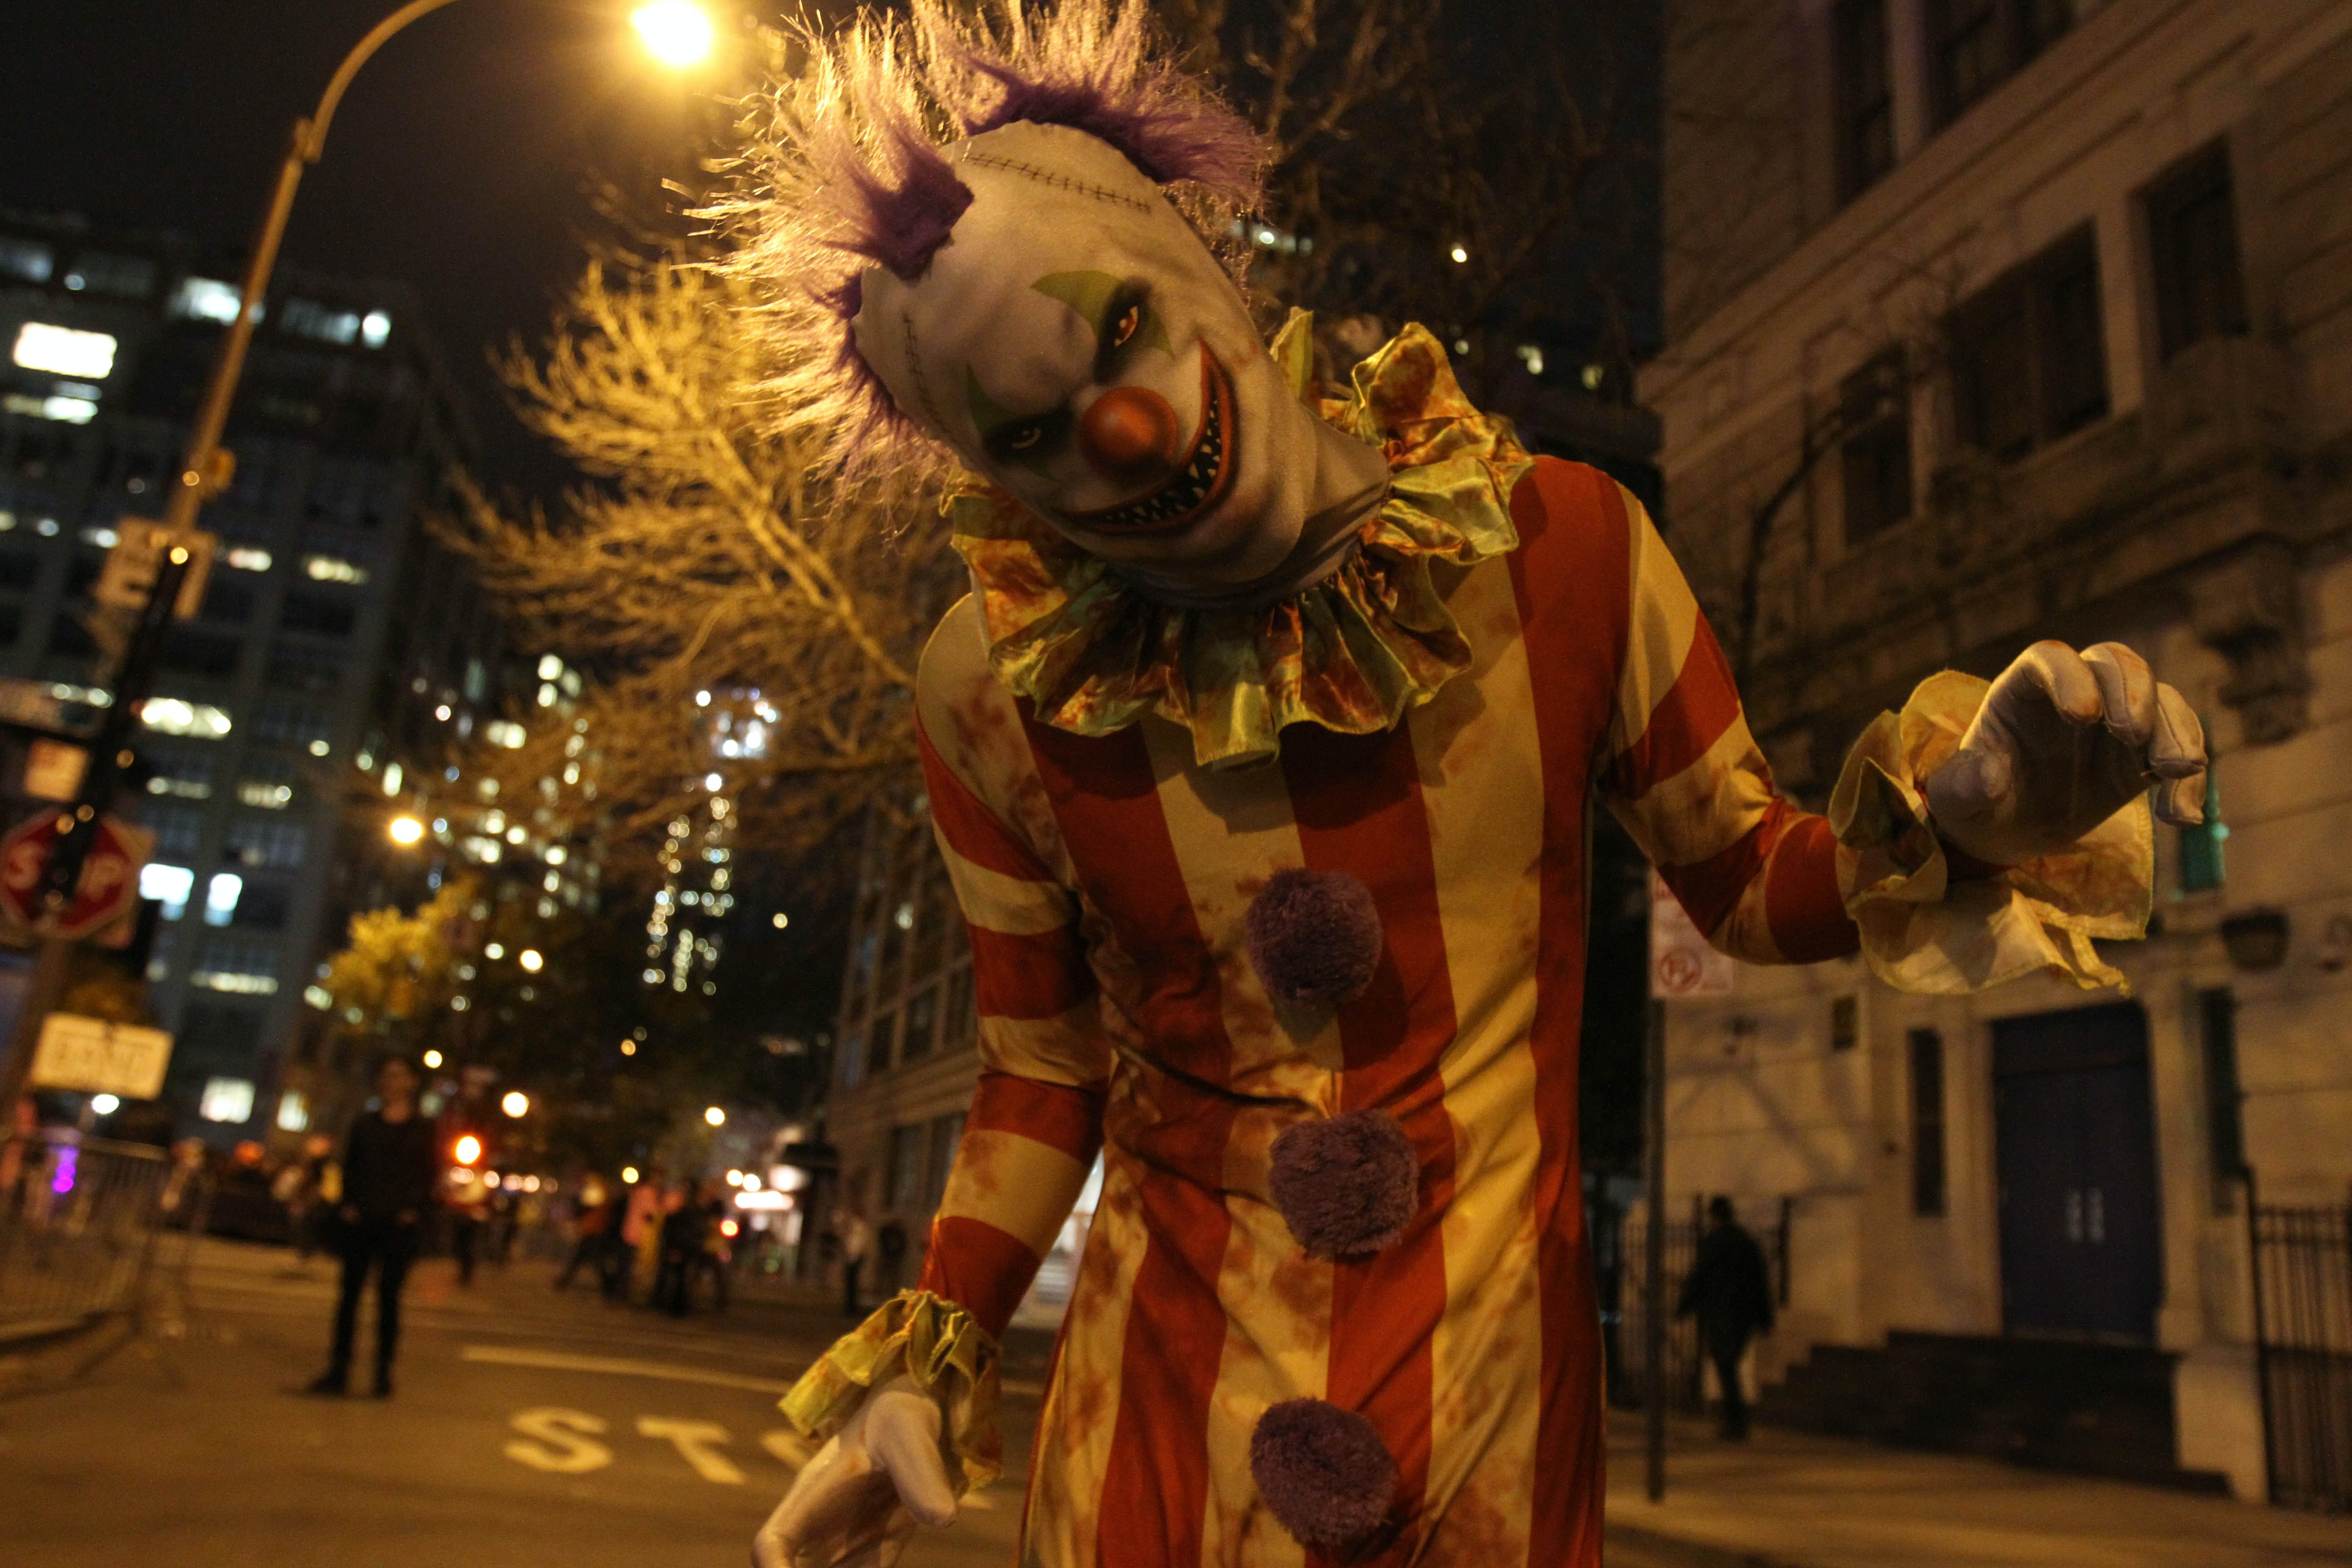 NYC Halloween Parade 2016 Livestream: Hereu0027s How To Watch ...